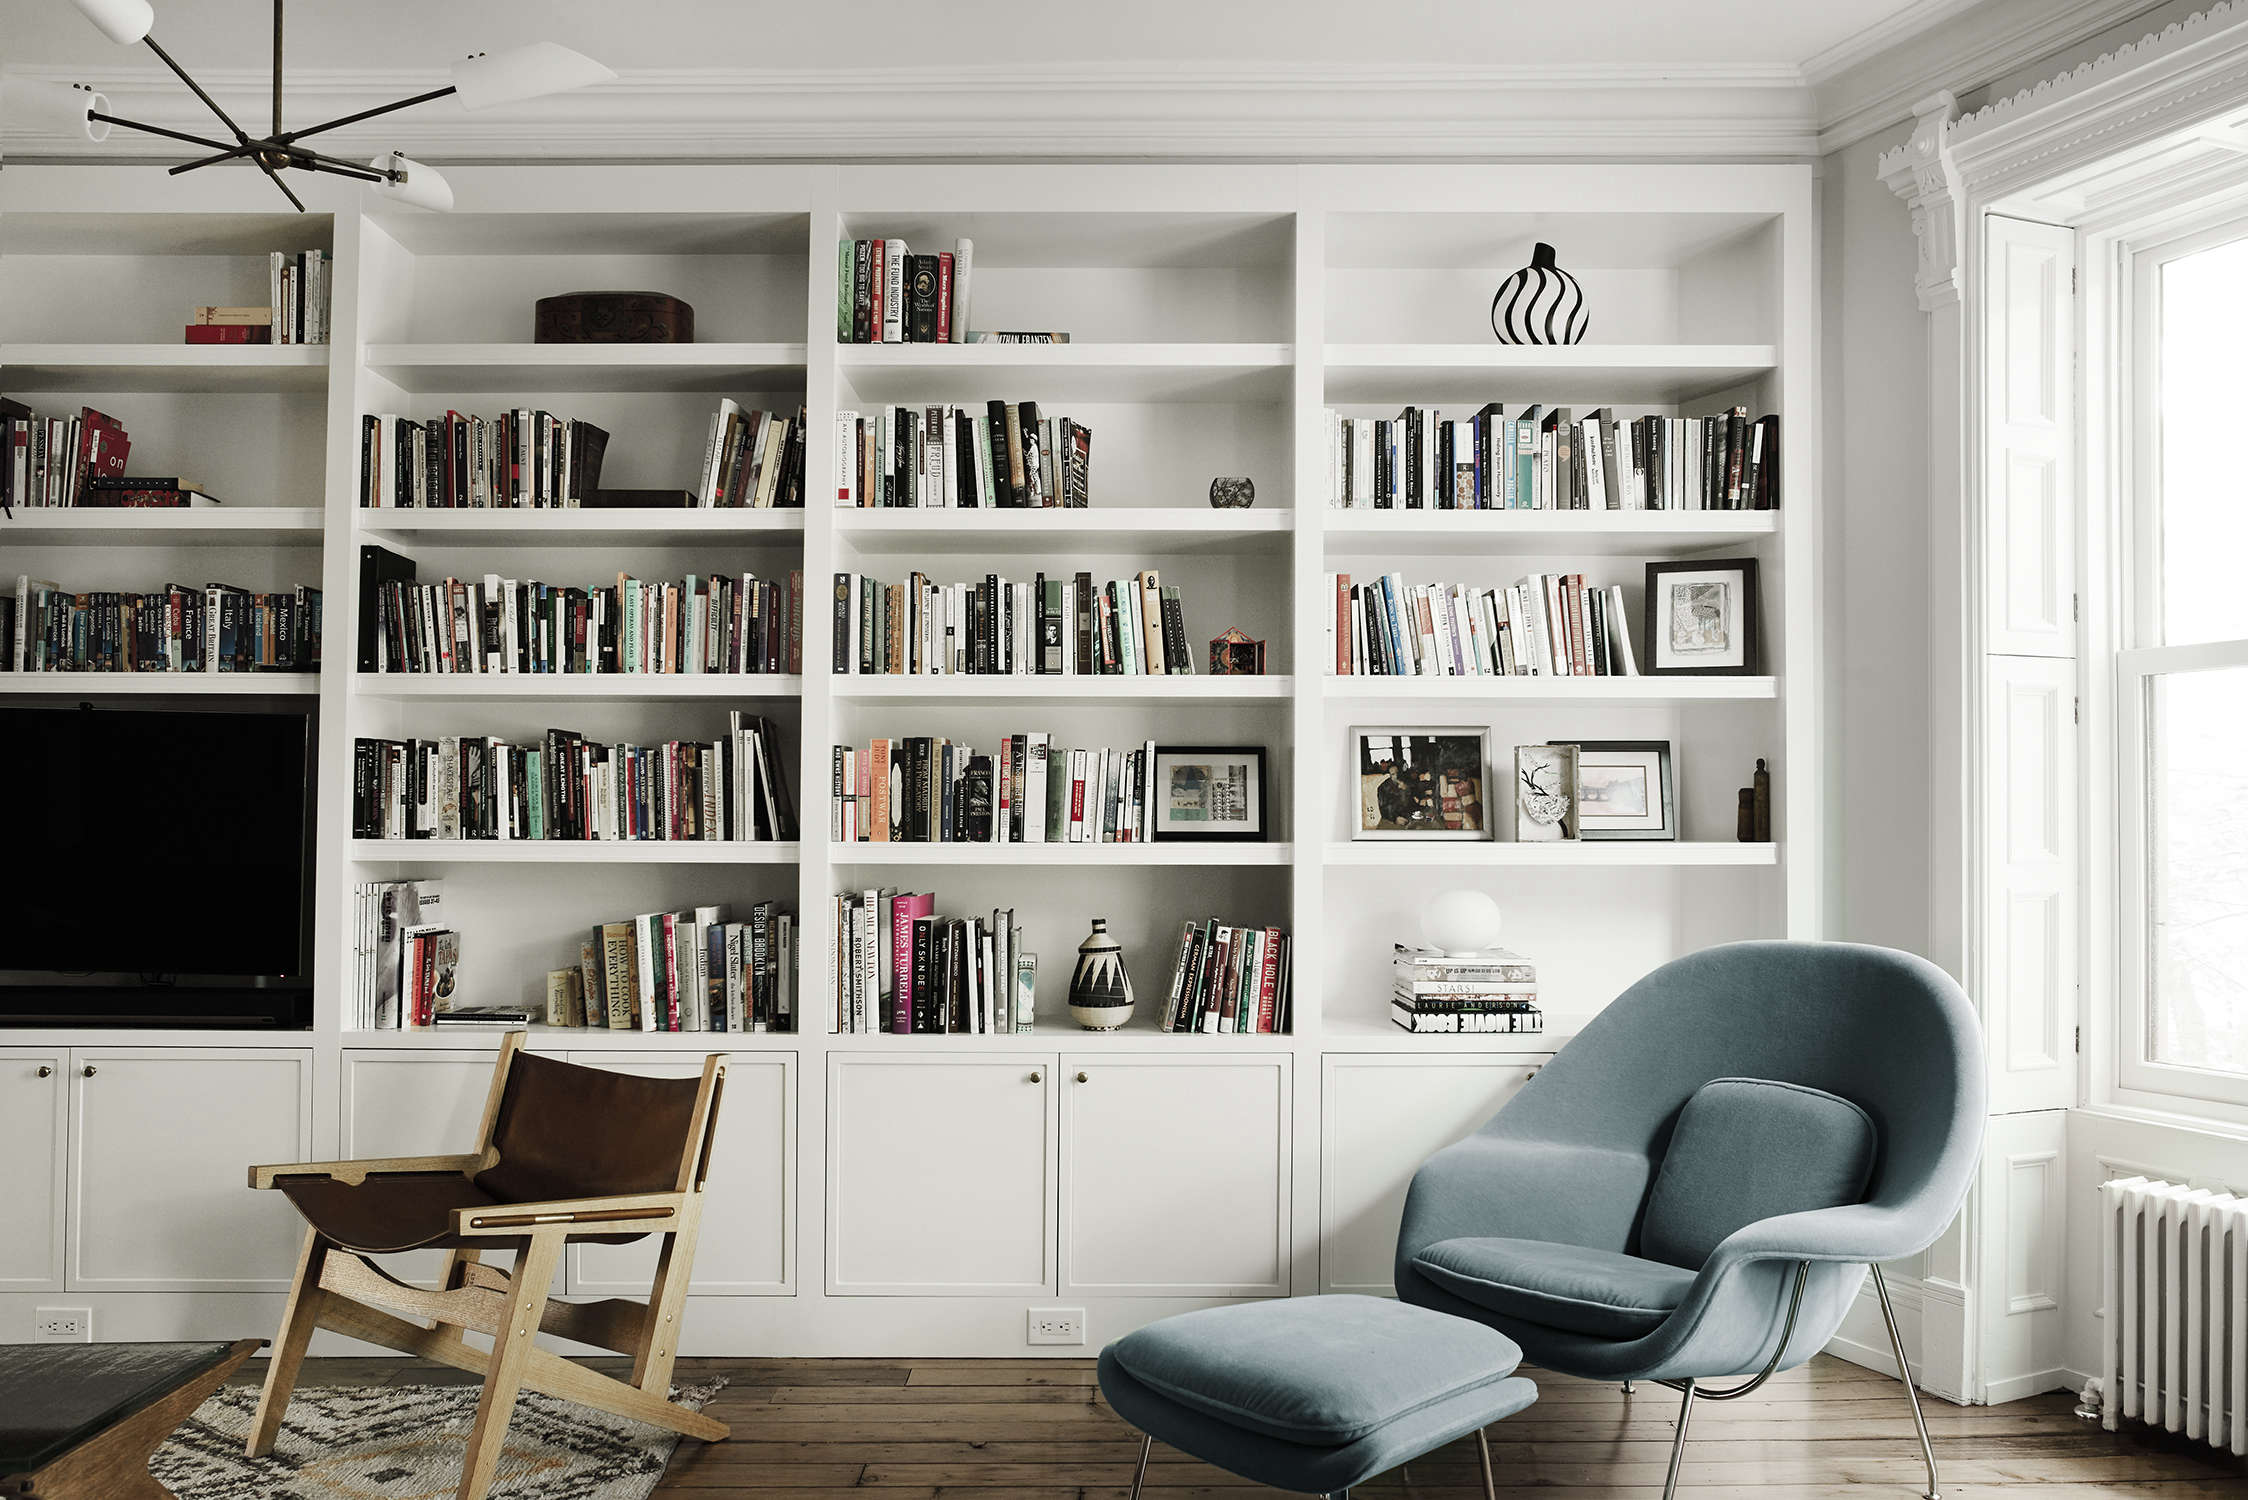 brooklyn townhouse remodel by bangia agostinho architecture and suzanne shaker  22